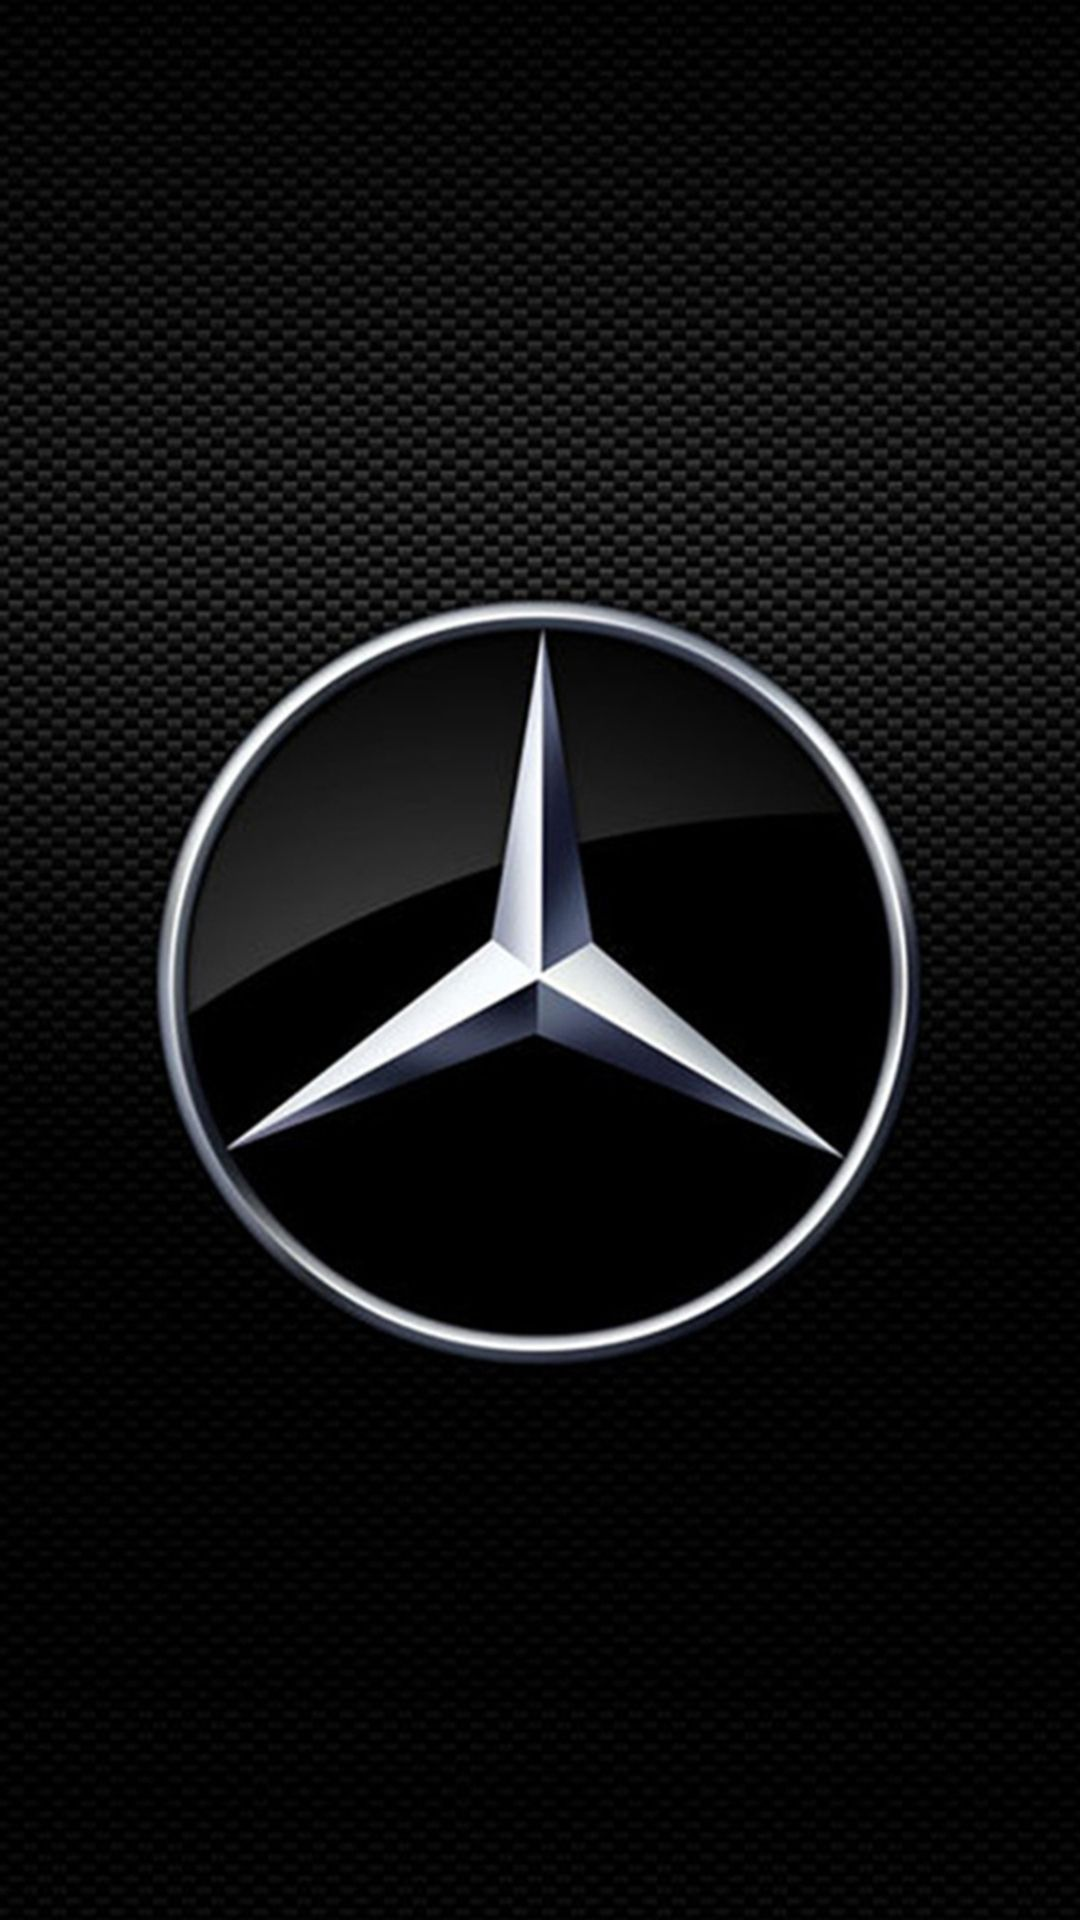 Mercedes Logo, Mercedes-Benz Car Symbol Meaning and History | Fondos de pantalla de coches ...